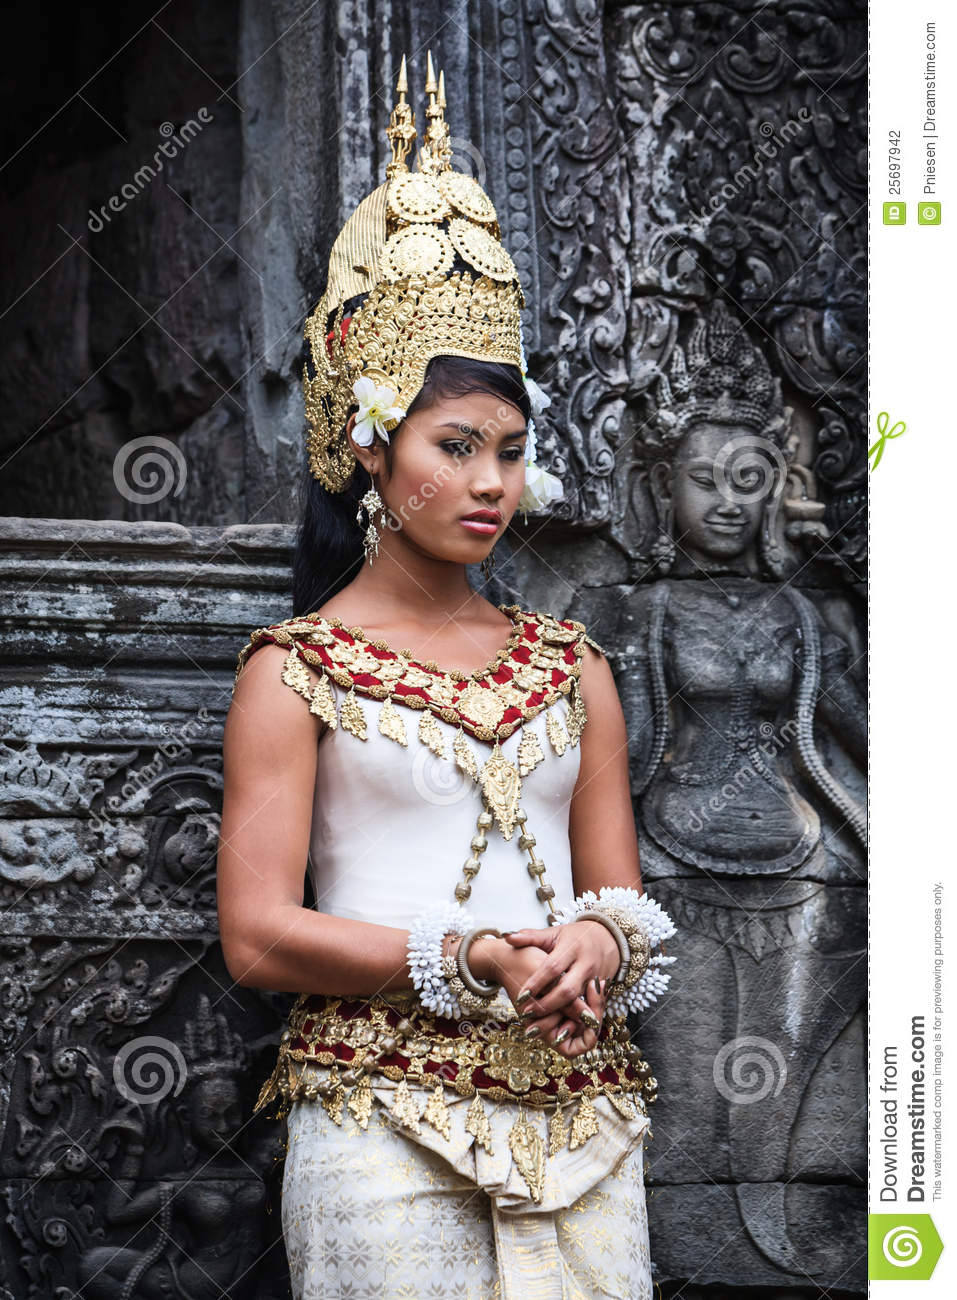 khmer apsara pictures - 600×900